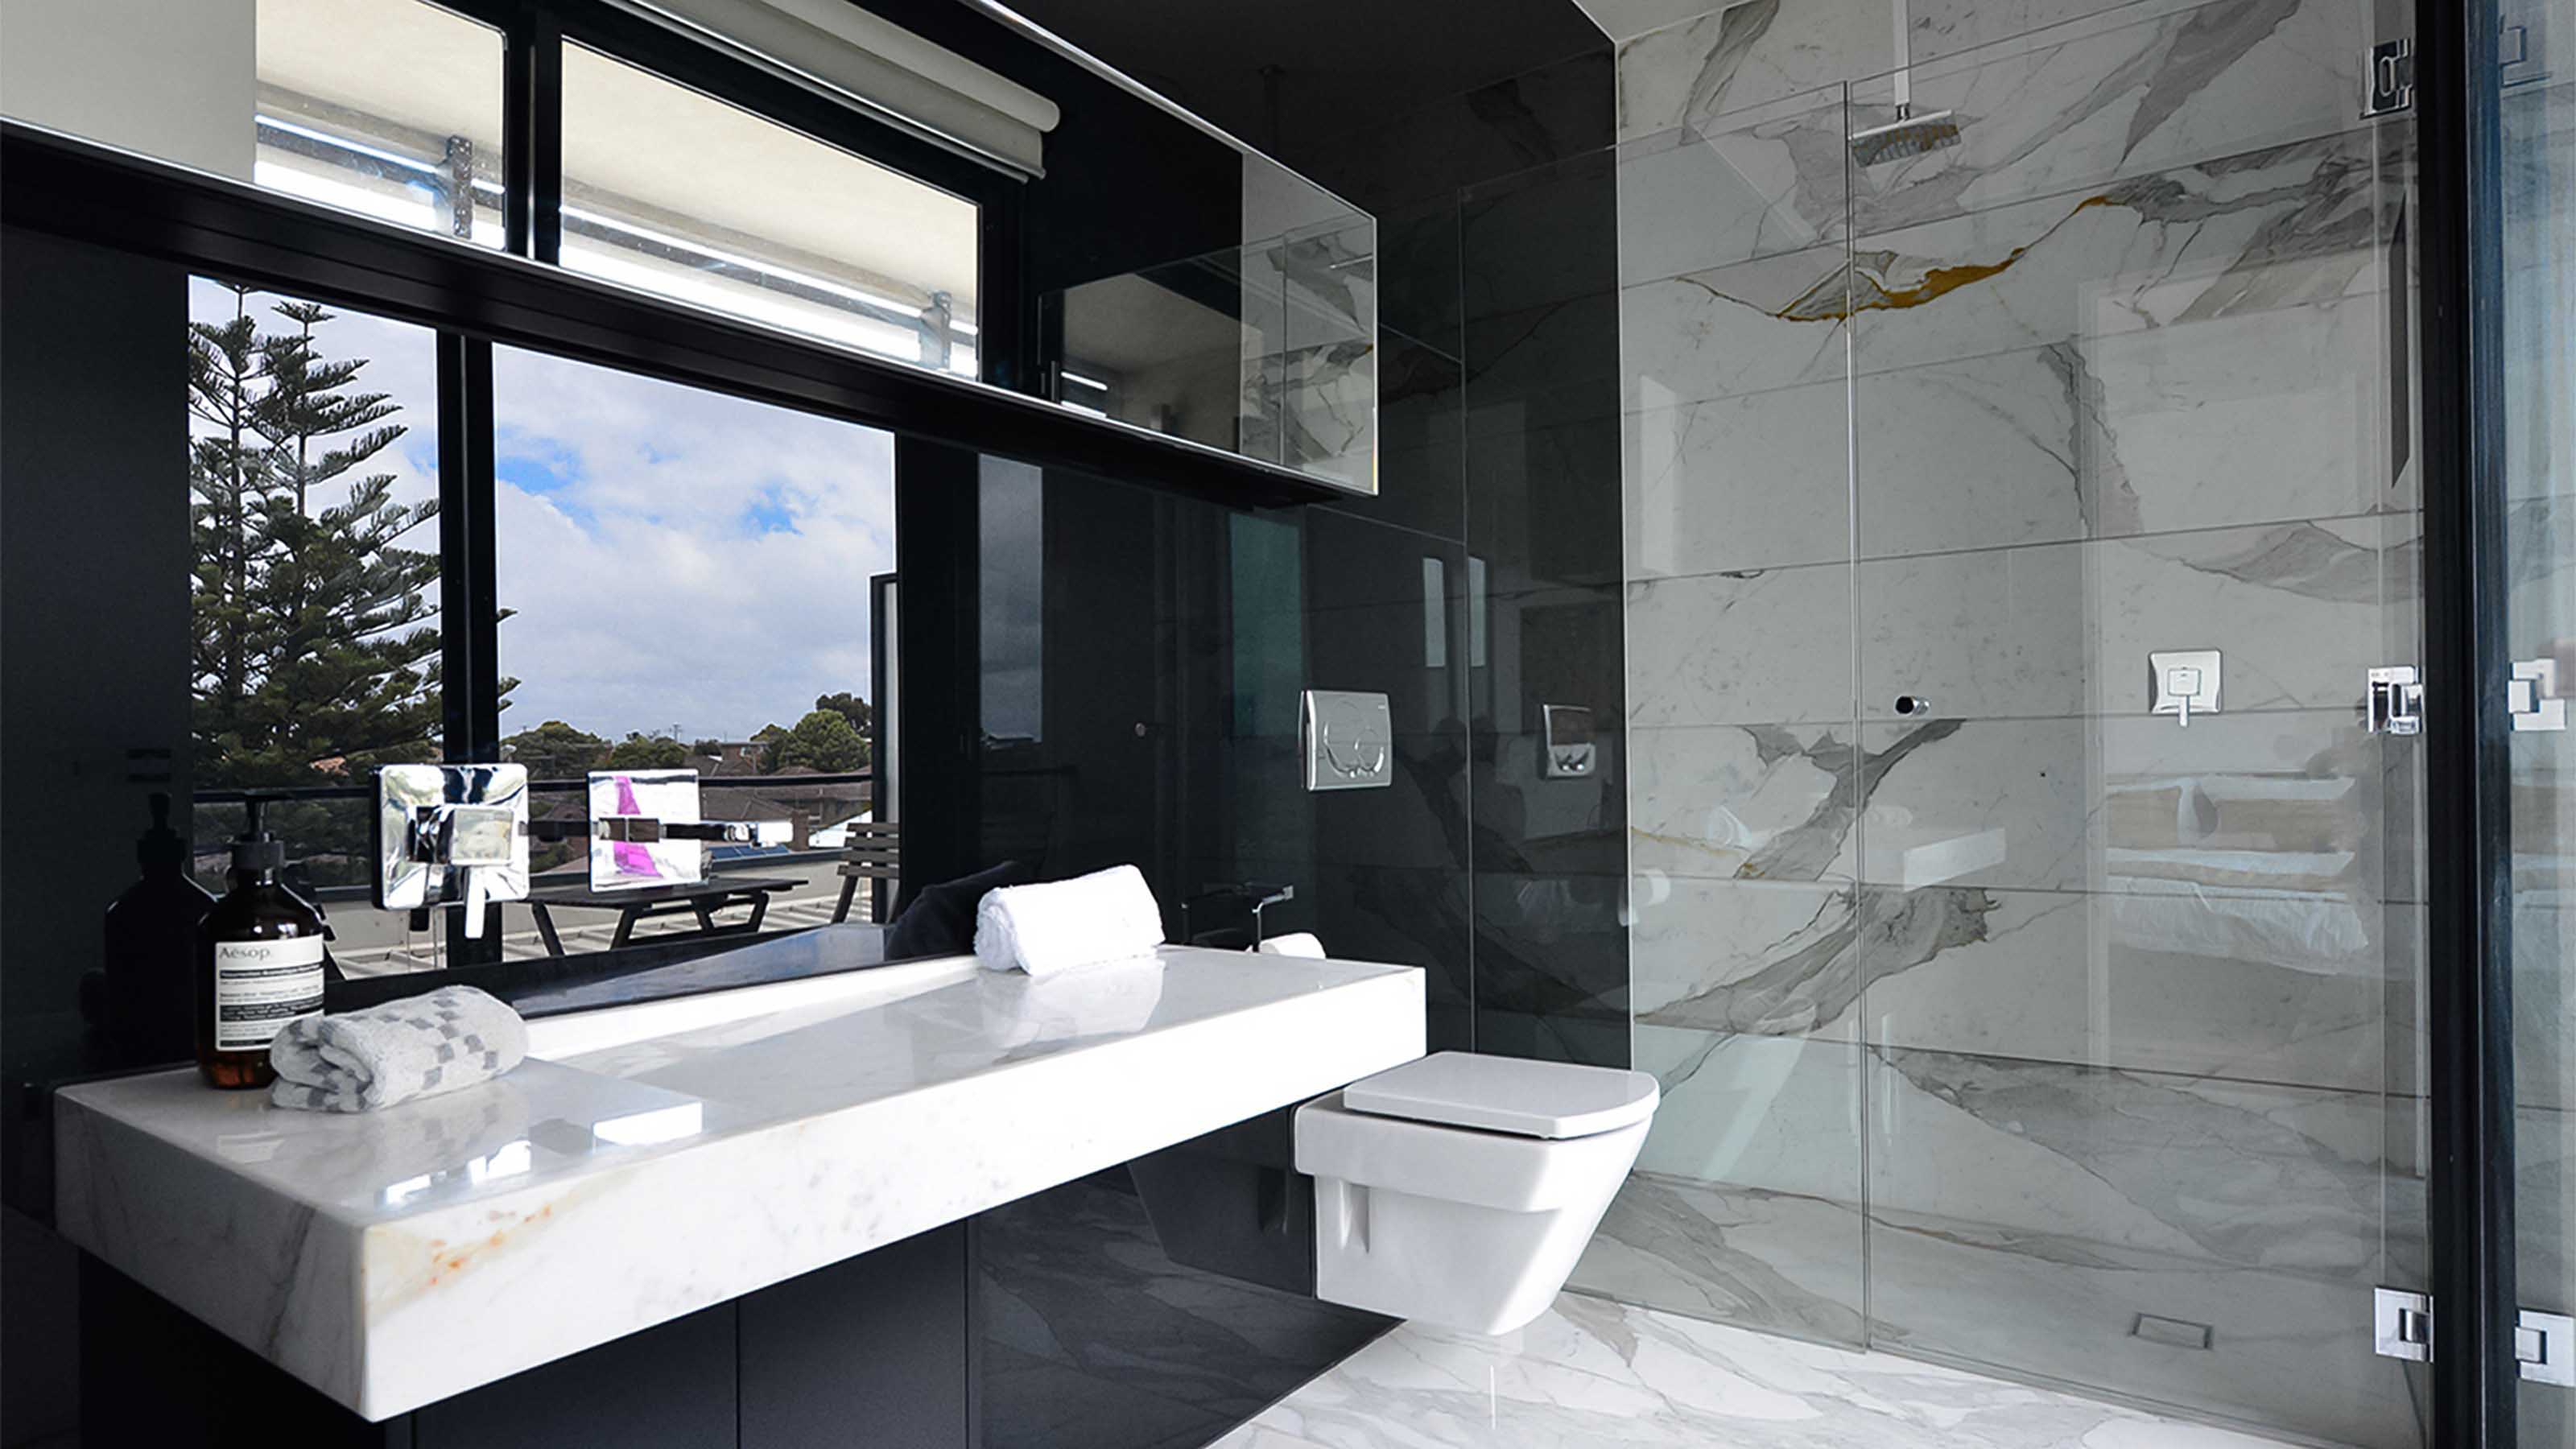 Glass splashbacks for bathroom sinks - Kolor Atmos Reflect Black Glass Splashbacks Frameless Shower Screen